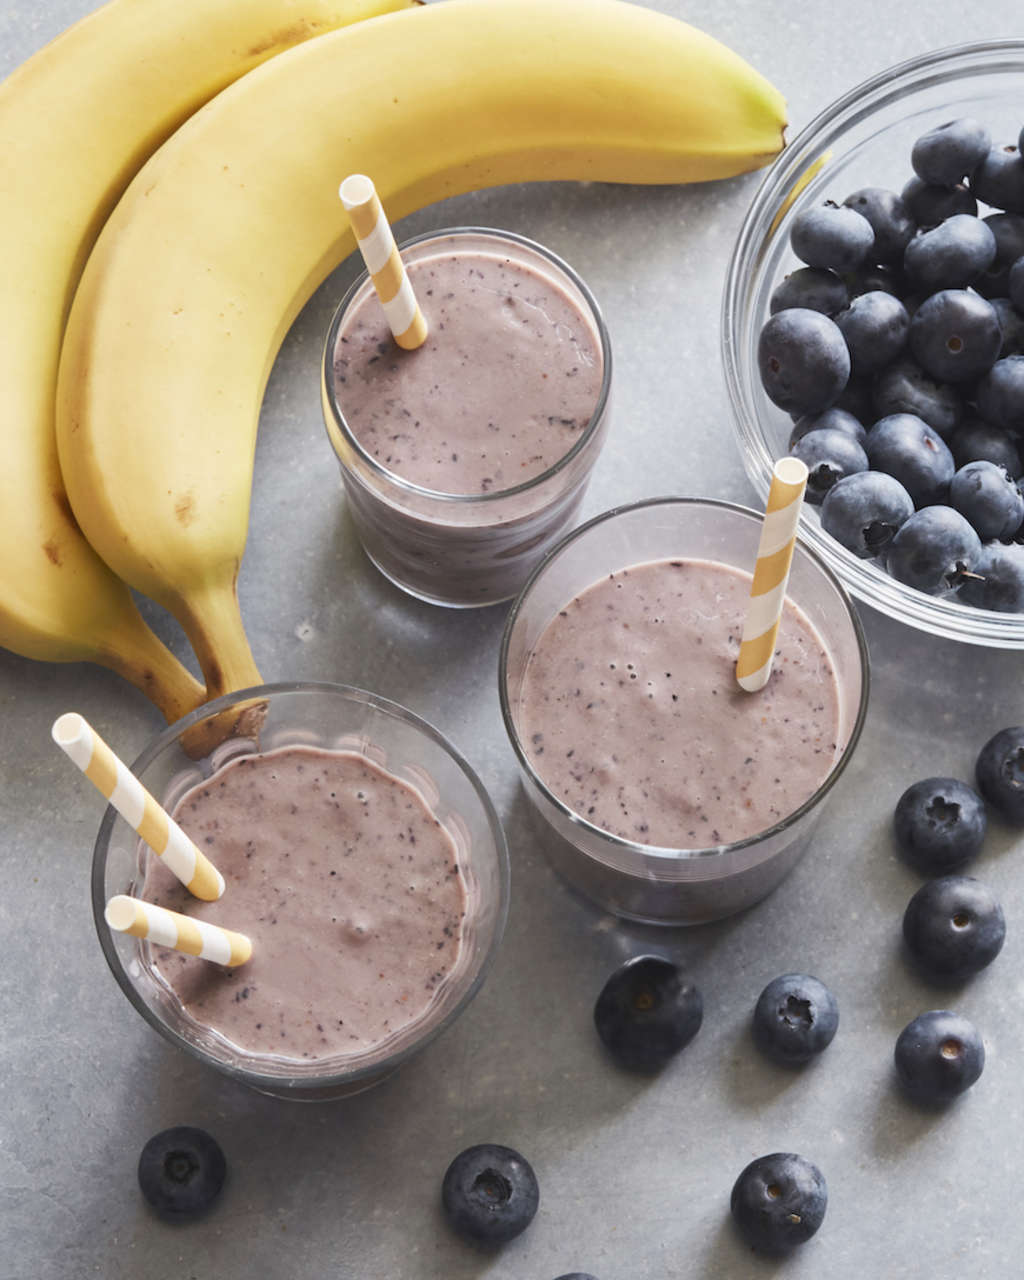 This 6-Ingredient Smoothie Tastes Like a Blueberry Muffin